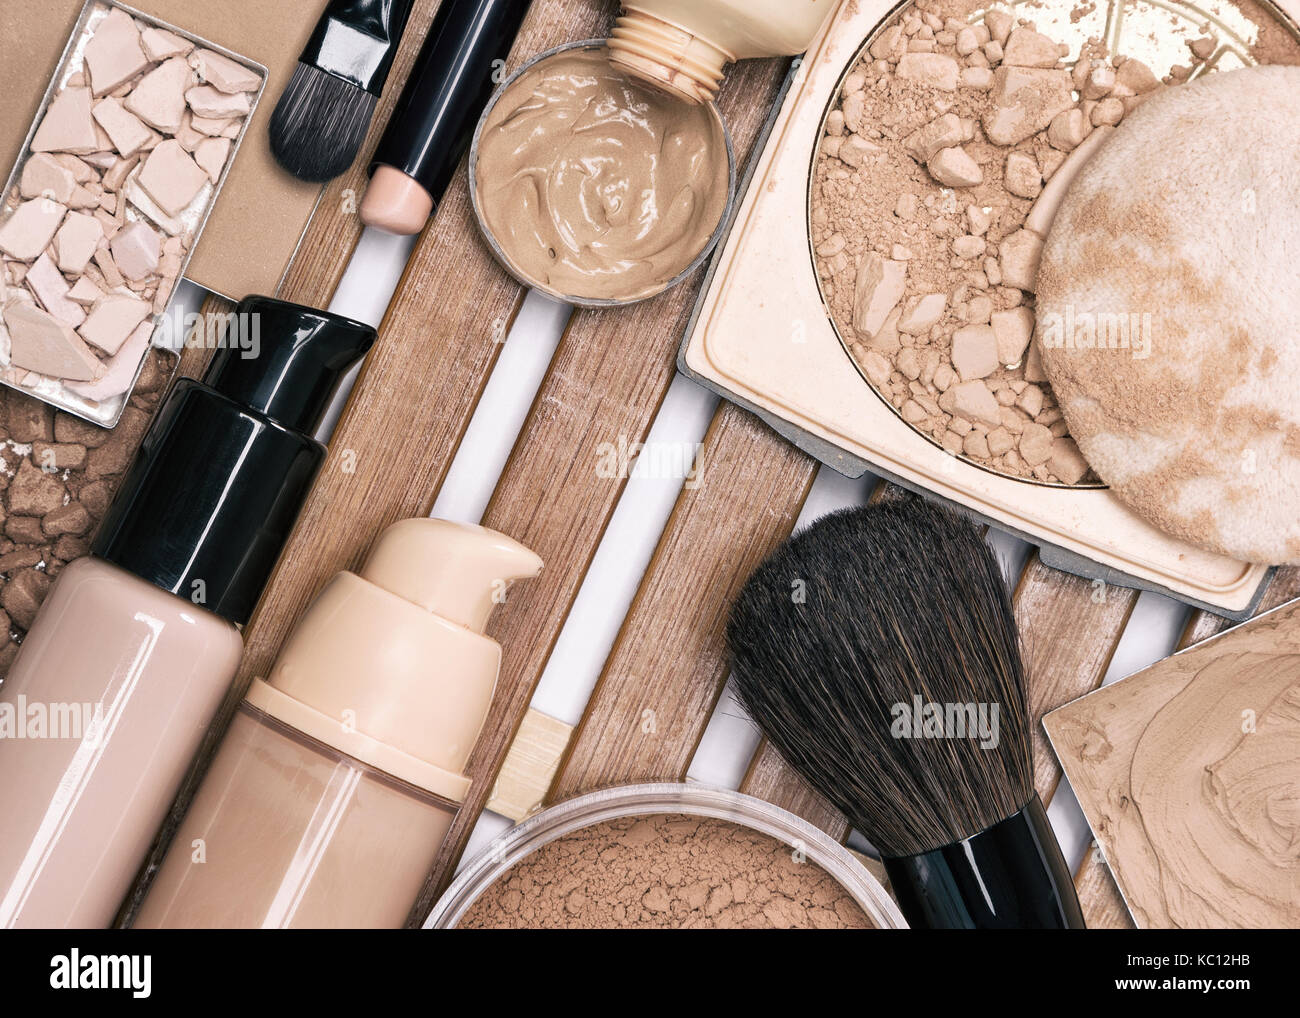 First step of makeup application - foundation products. Concealer stick, primer, liquid and cream foundation, different - Stock Image